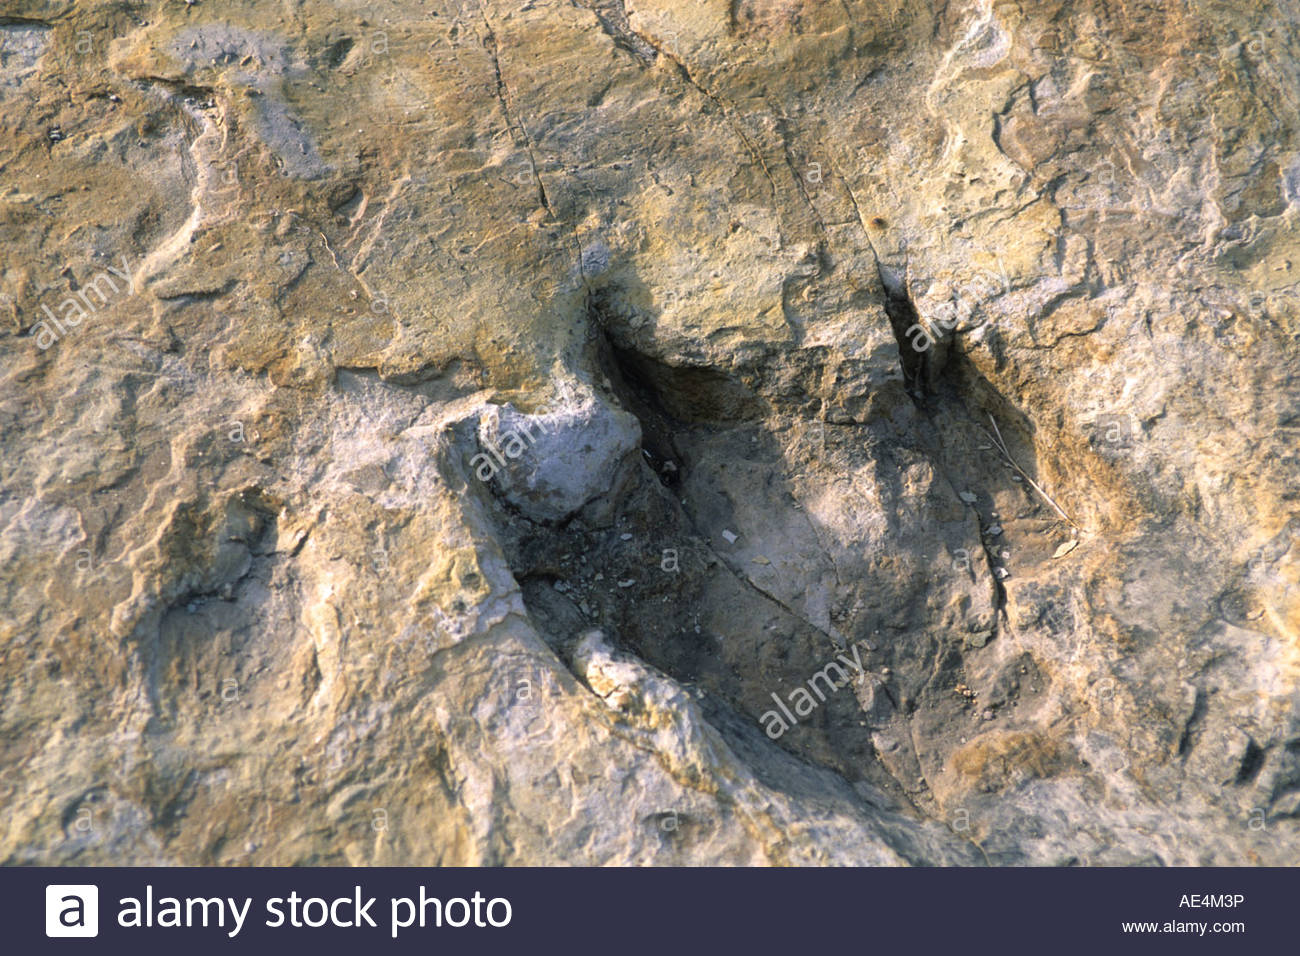 Kiowa and Rita Blanca National Grasslands Northeastern New Mexico, Dinosaur Footprint Stock Photos & Dinosaur Footprint Stock Images ...